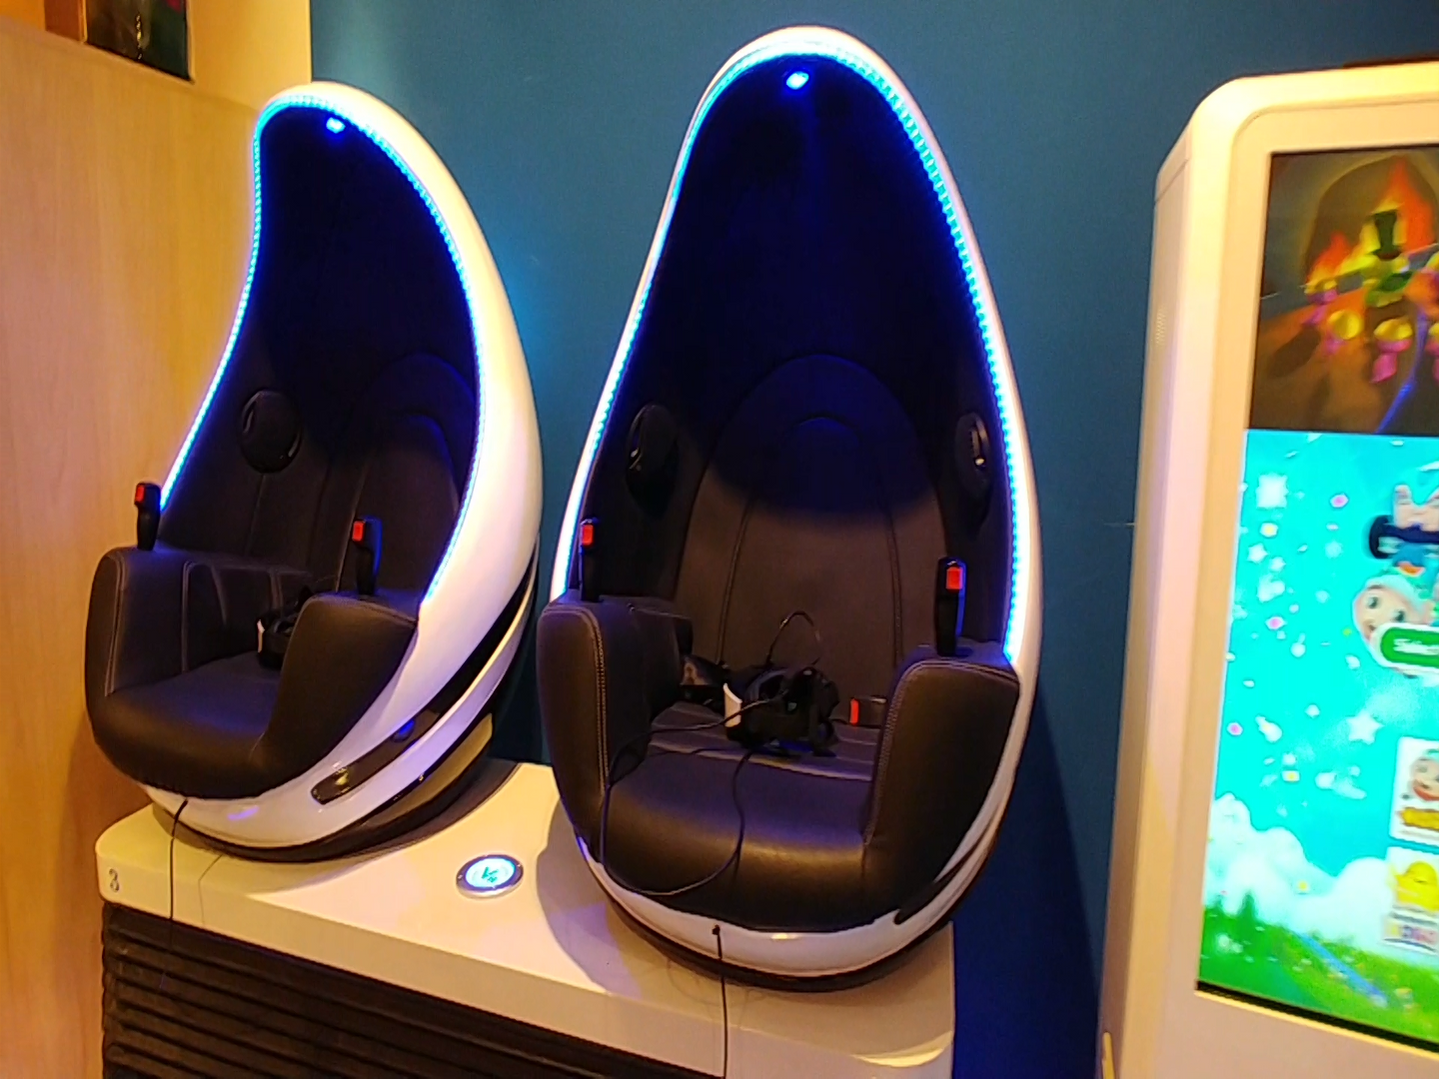 Virtual Reality Chair Interactive Games